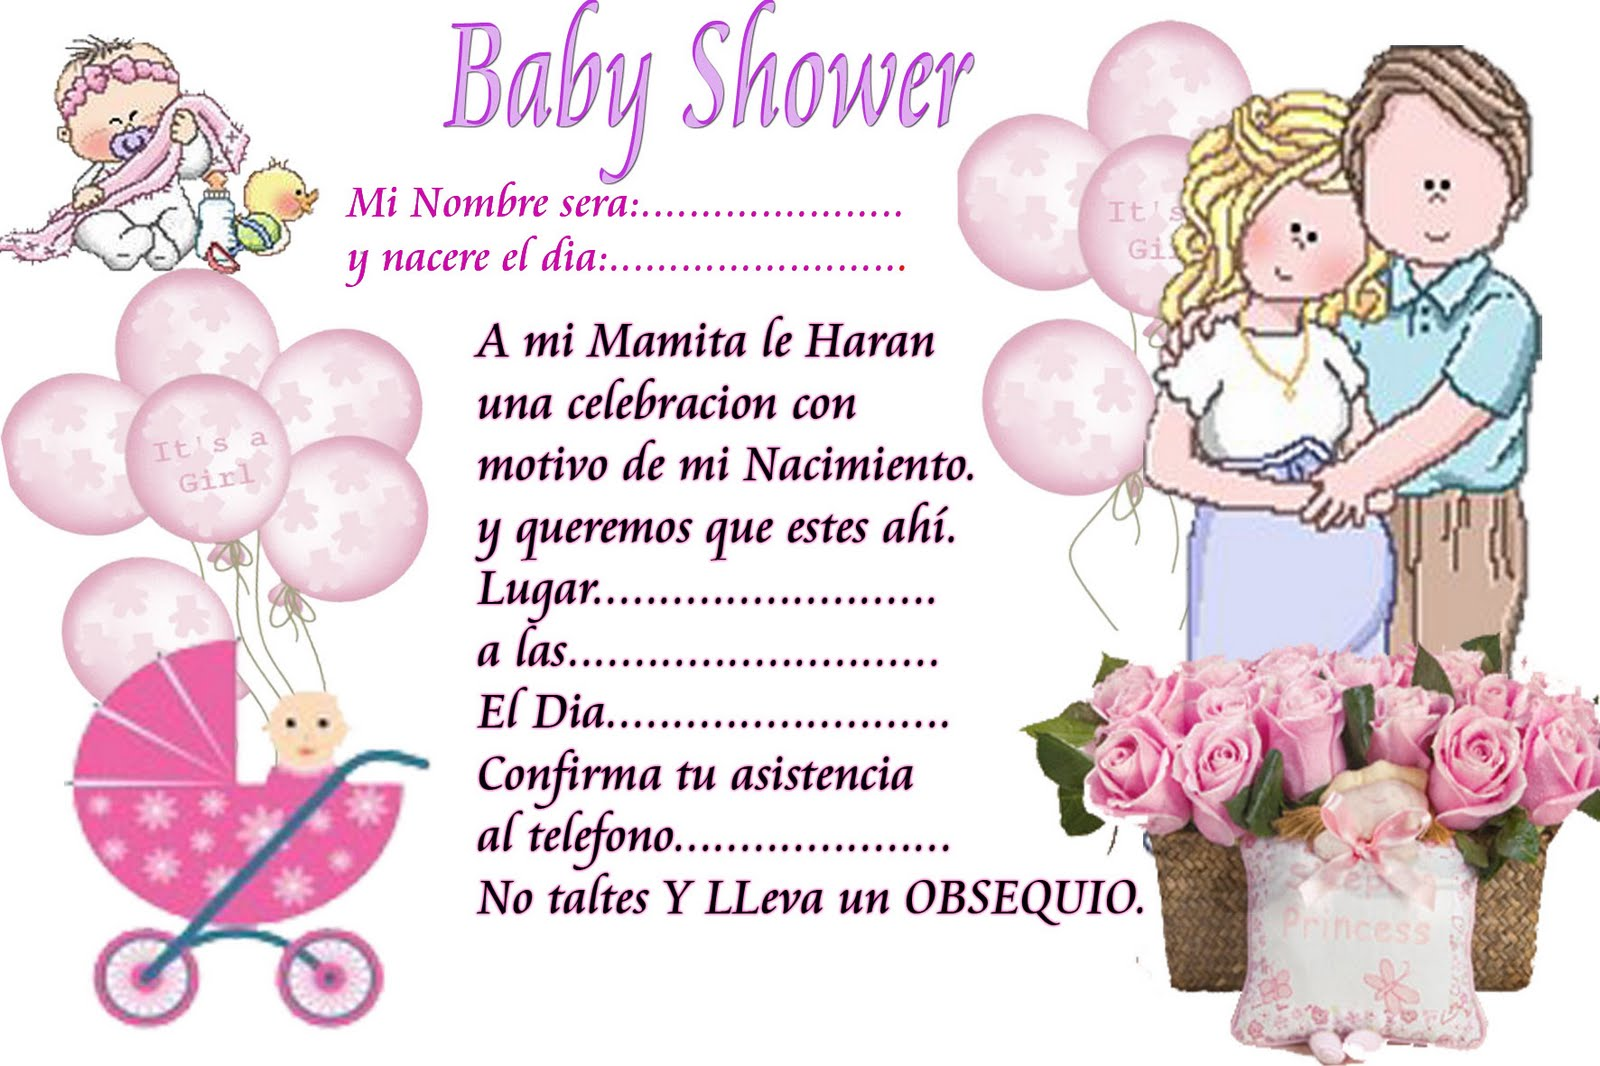 la version para editar en photoshop ideas para baby shower aqui estan